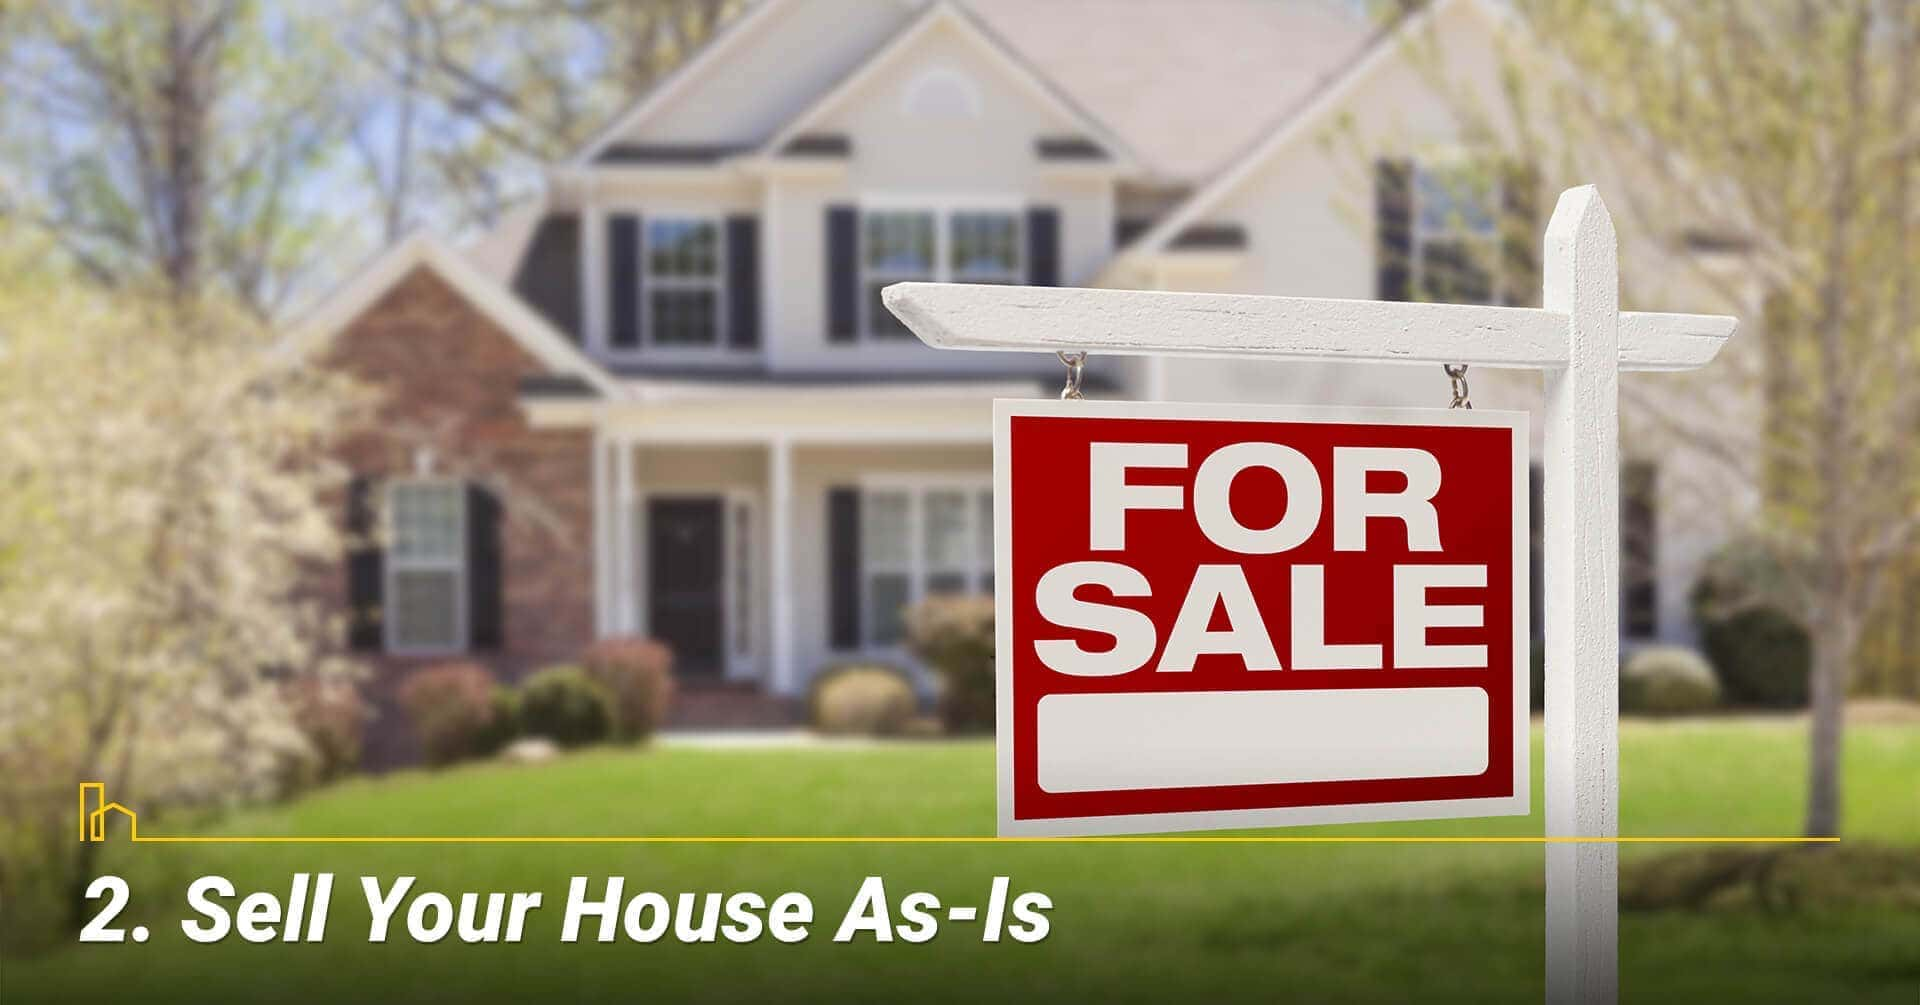 Sell Your House As-Is, sell your home in its current condition